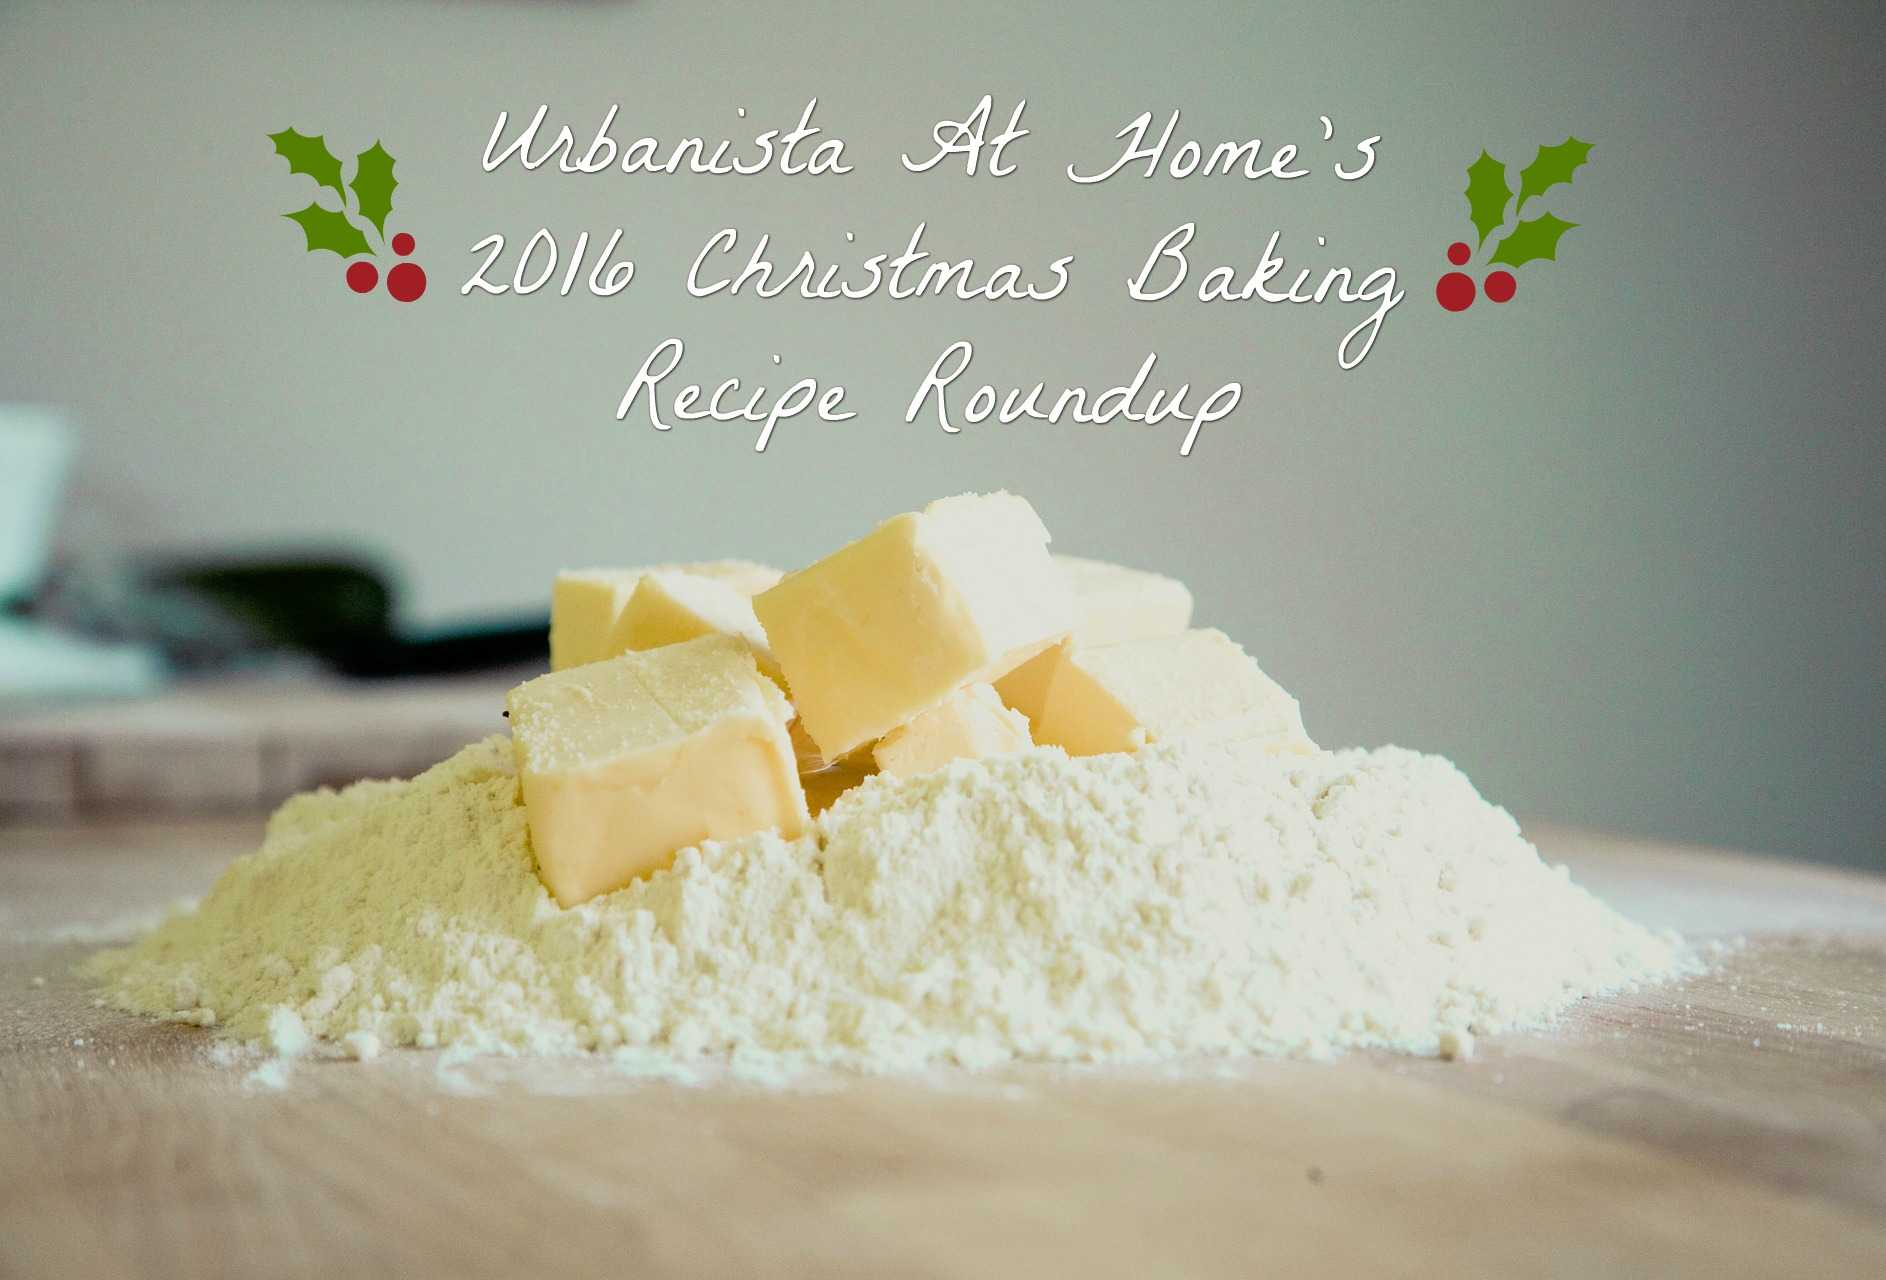 urbanistaathome-com-2016-christmas-baking-recipe-roundup